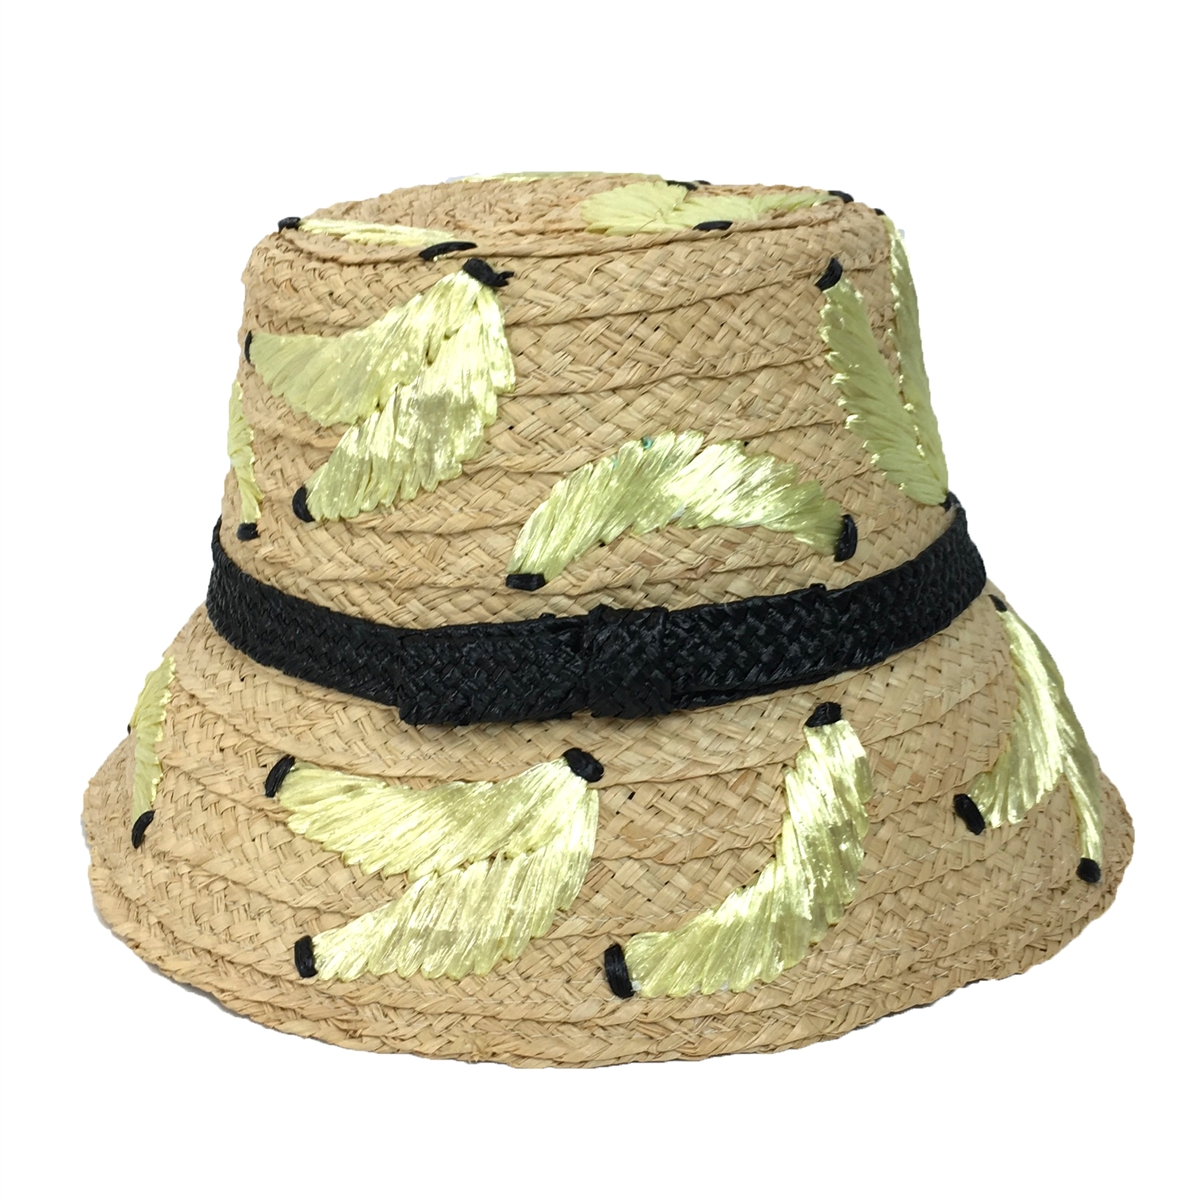 00e372796d193 Kate Spade  That s Bananas  Embroidered Sun Hat